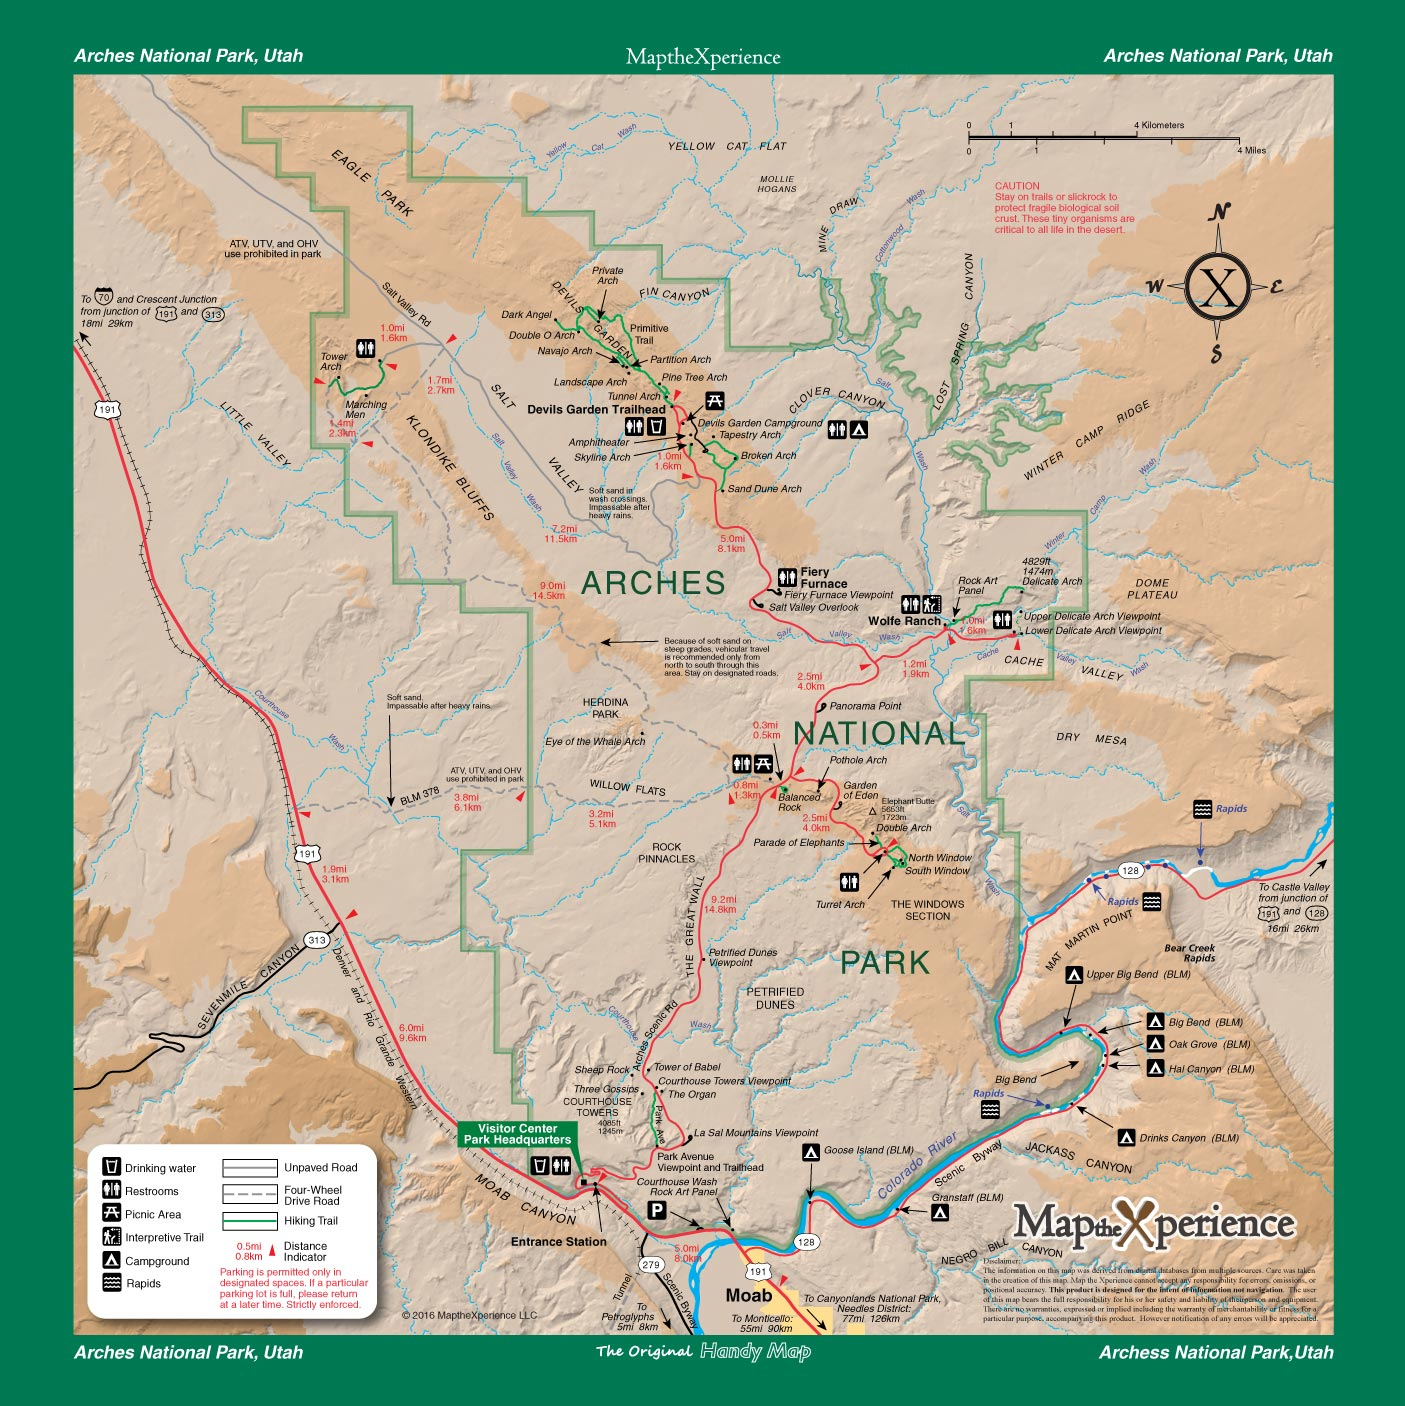 Arches National Park Map - Map the Xperience - Avenza Maps